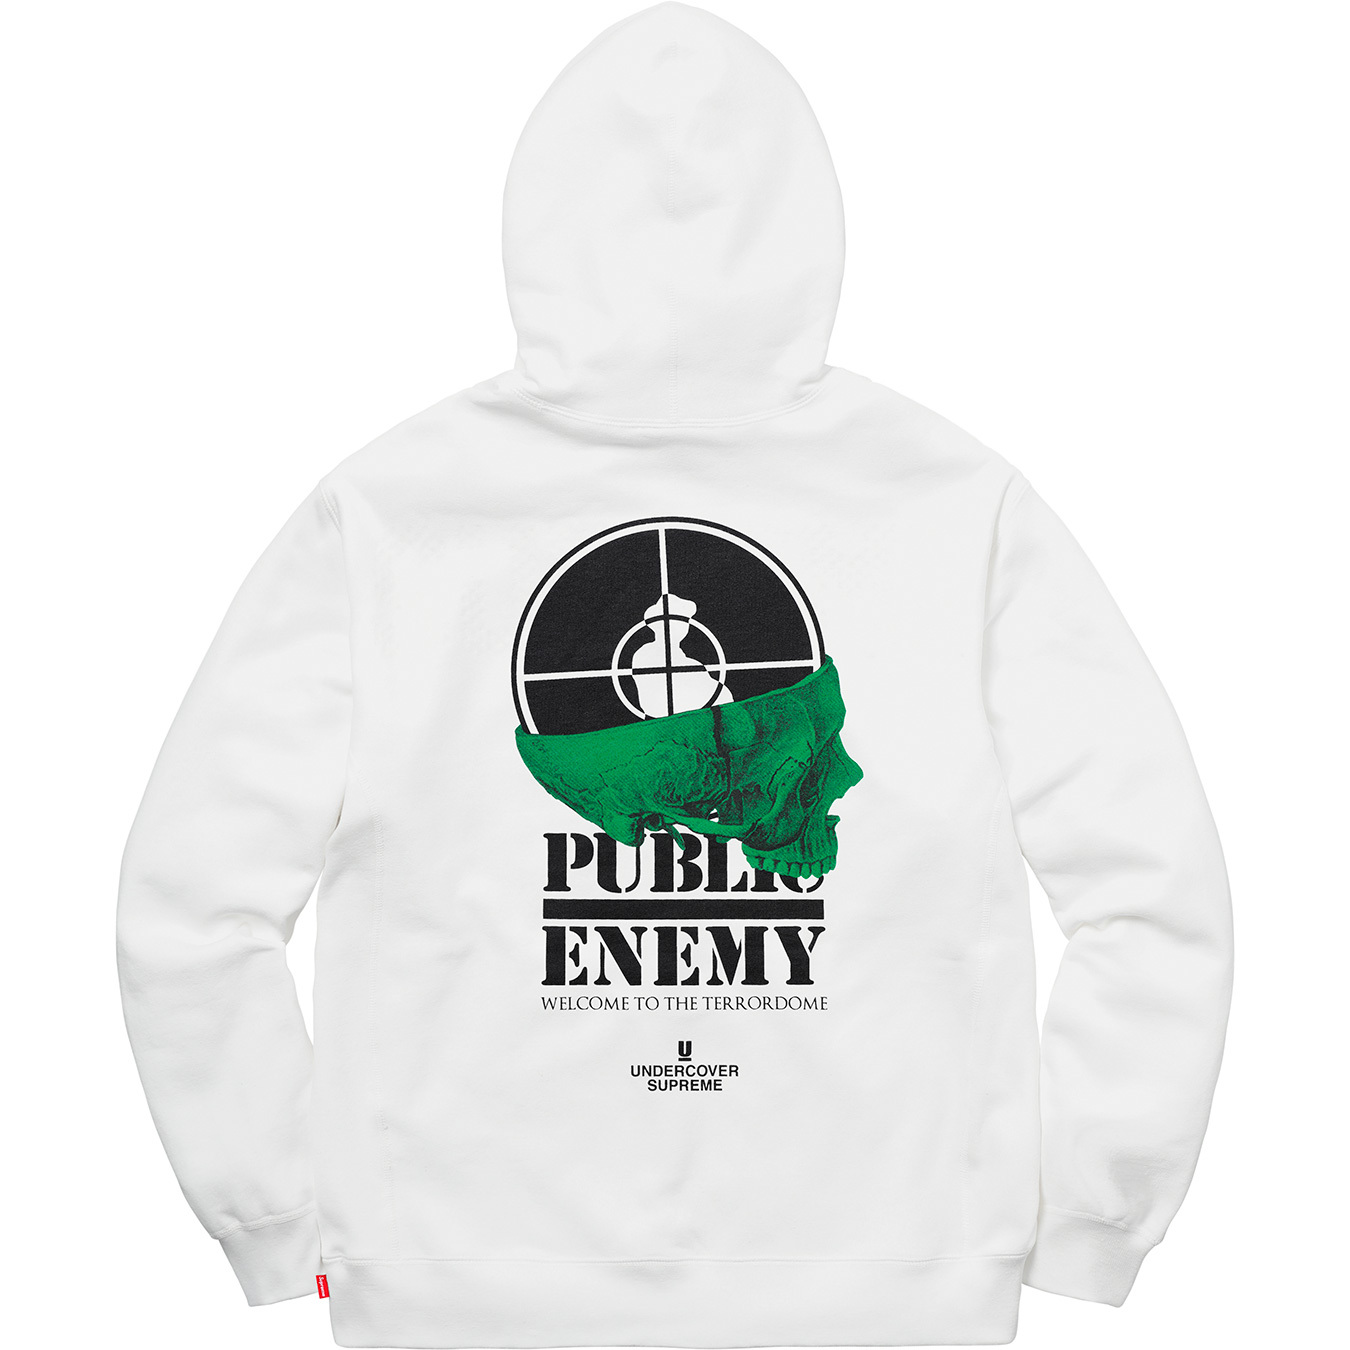 supreme-undercover-public-enemy-18ss-week4-release-20180317-terrordome-hooded-sweatshirt